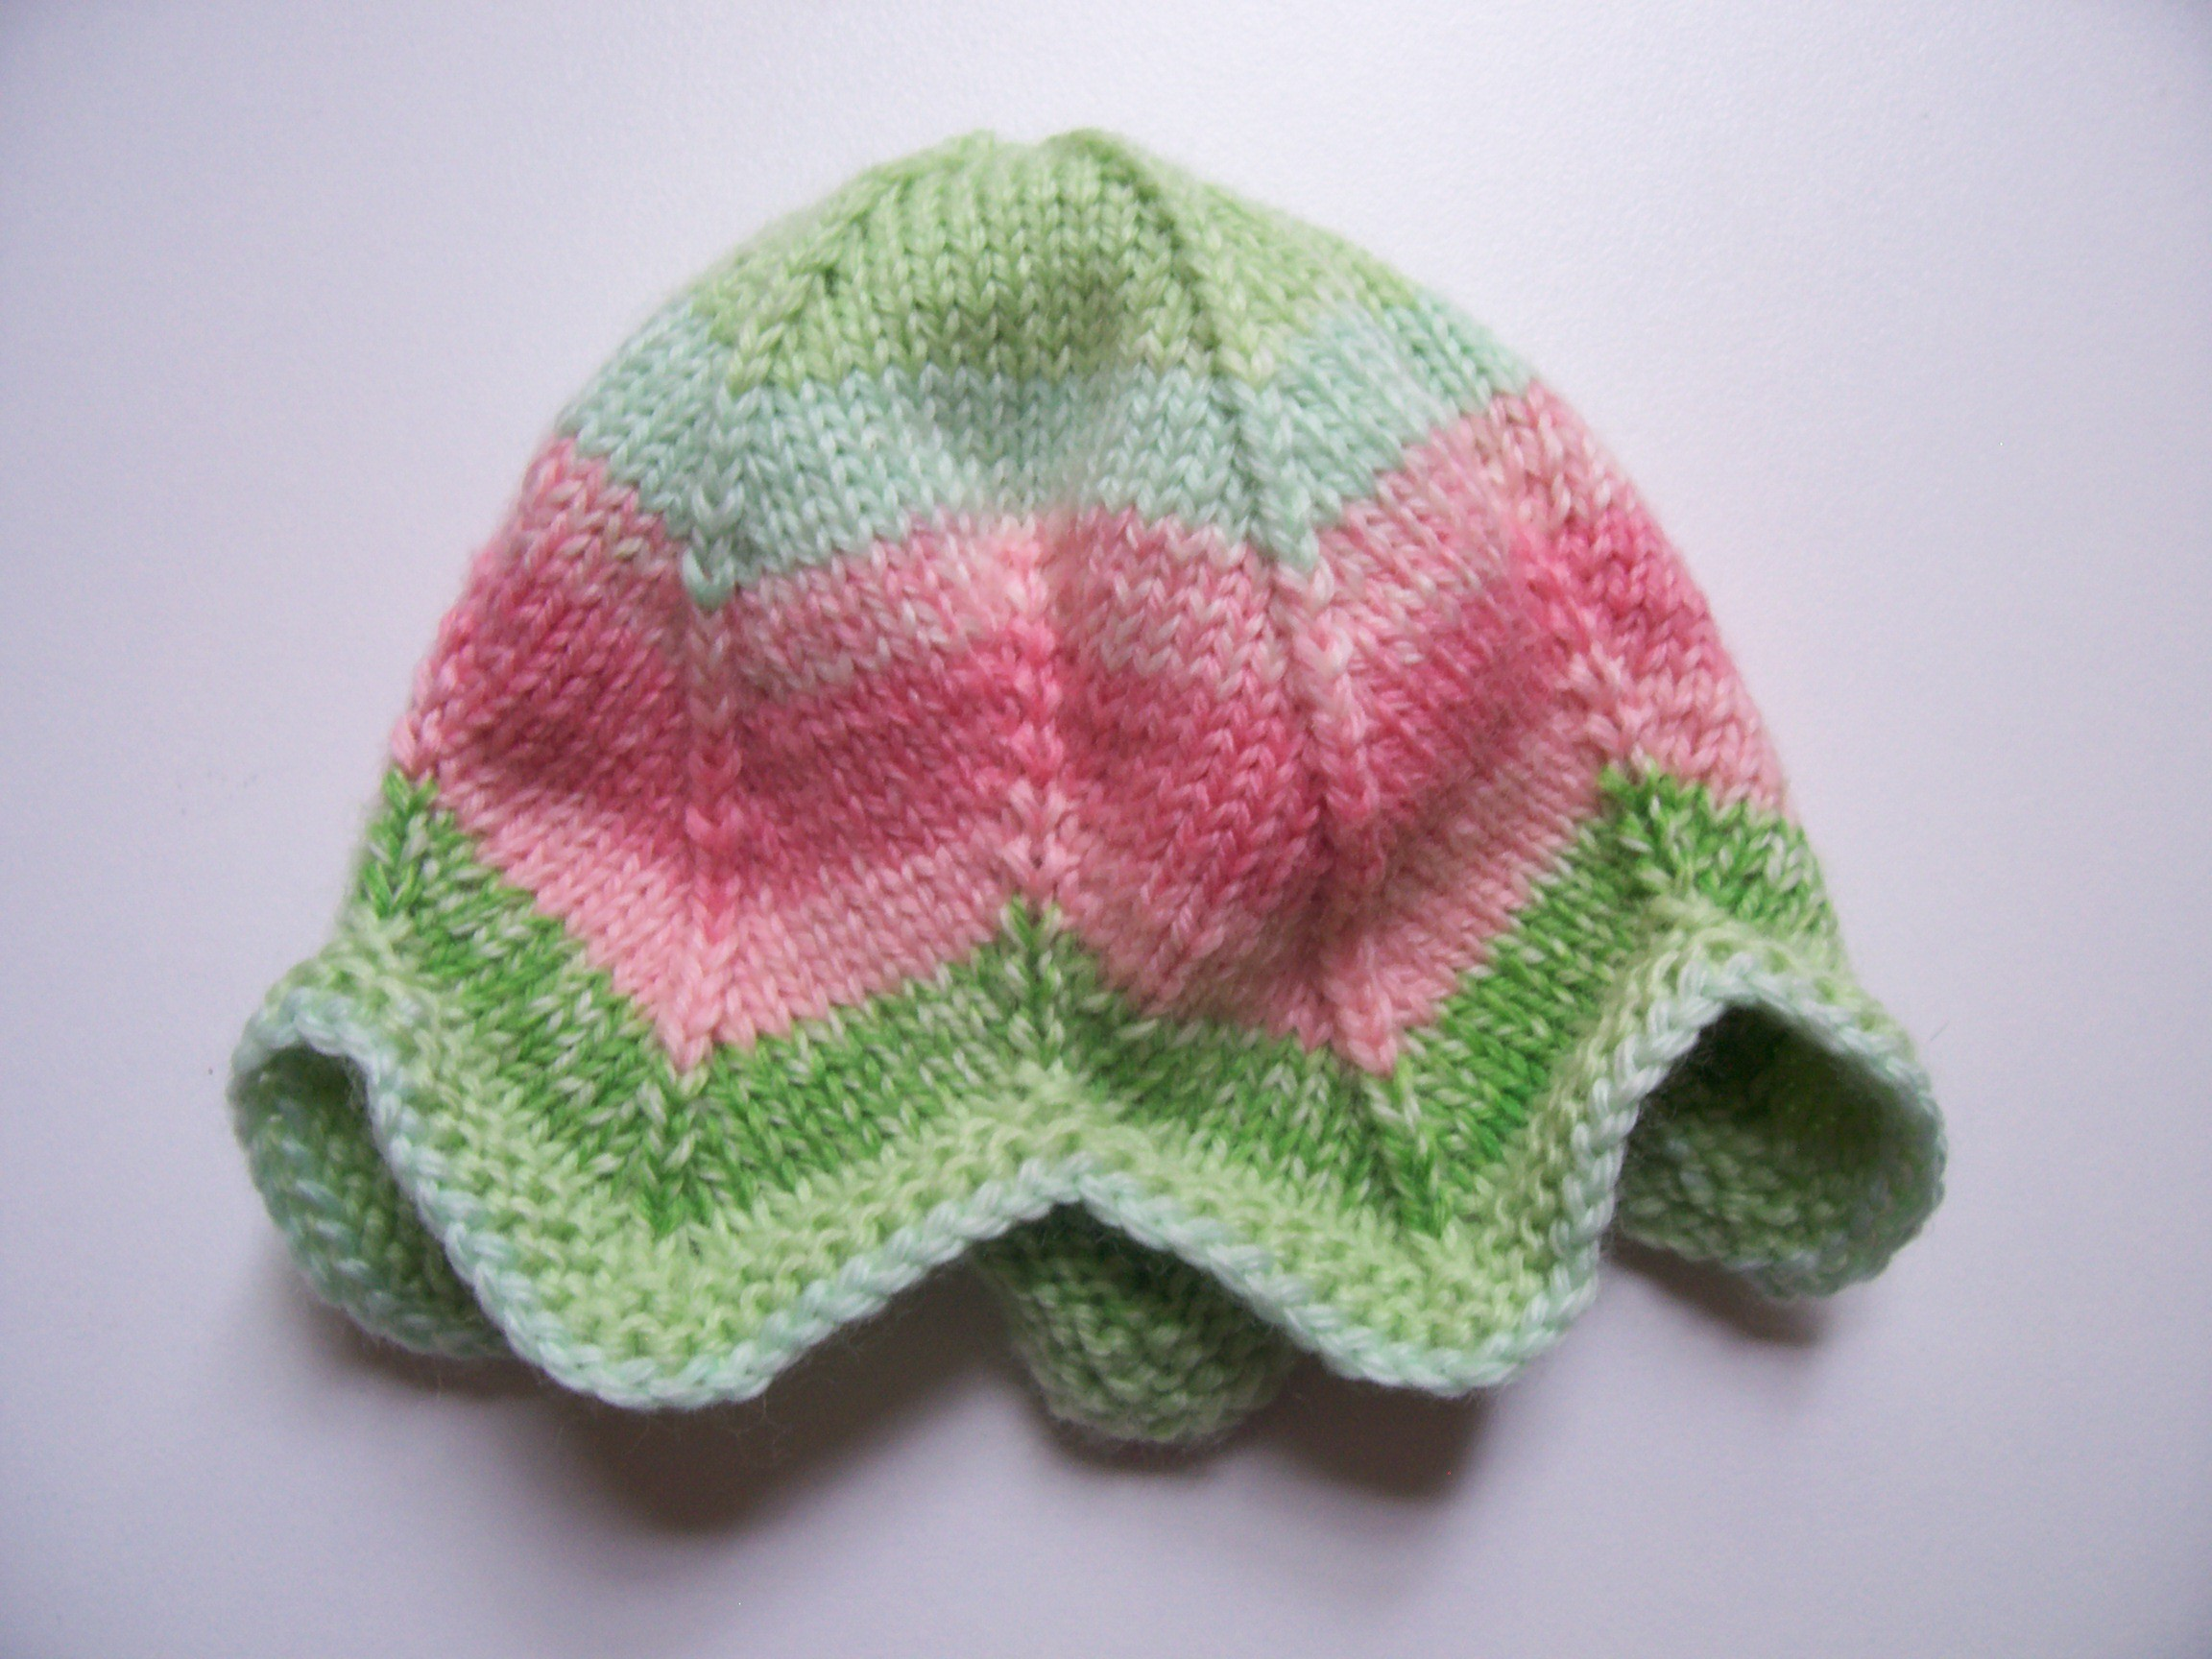 Knitting Pattern Preemie Baby Hat : Preemie Knit Hat Pattern A Knitting Blog